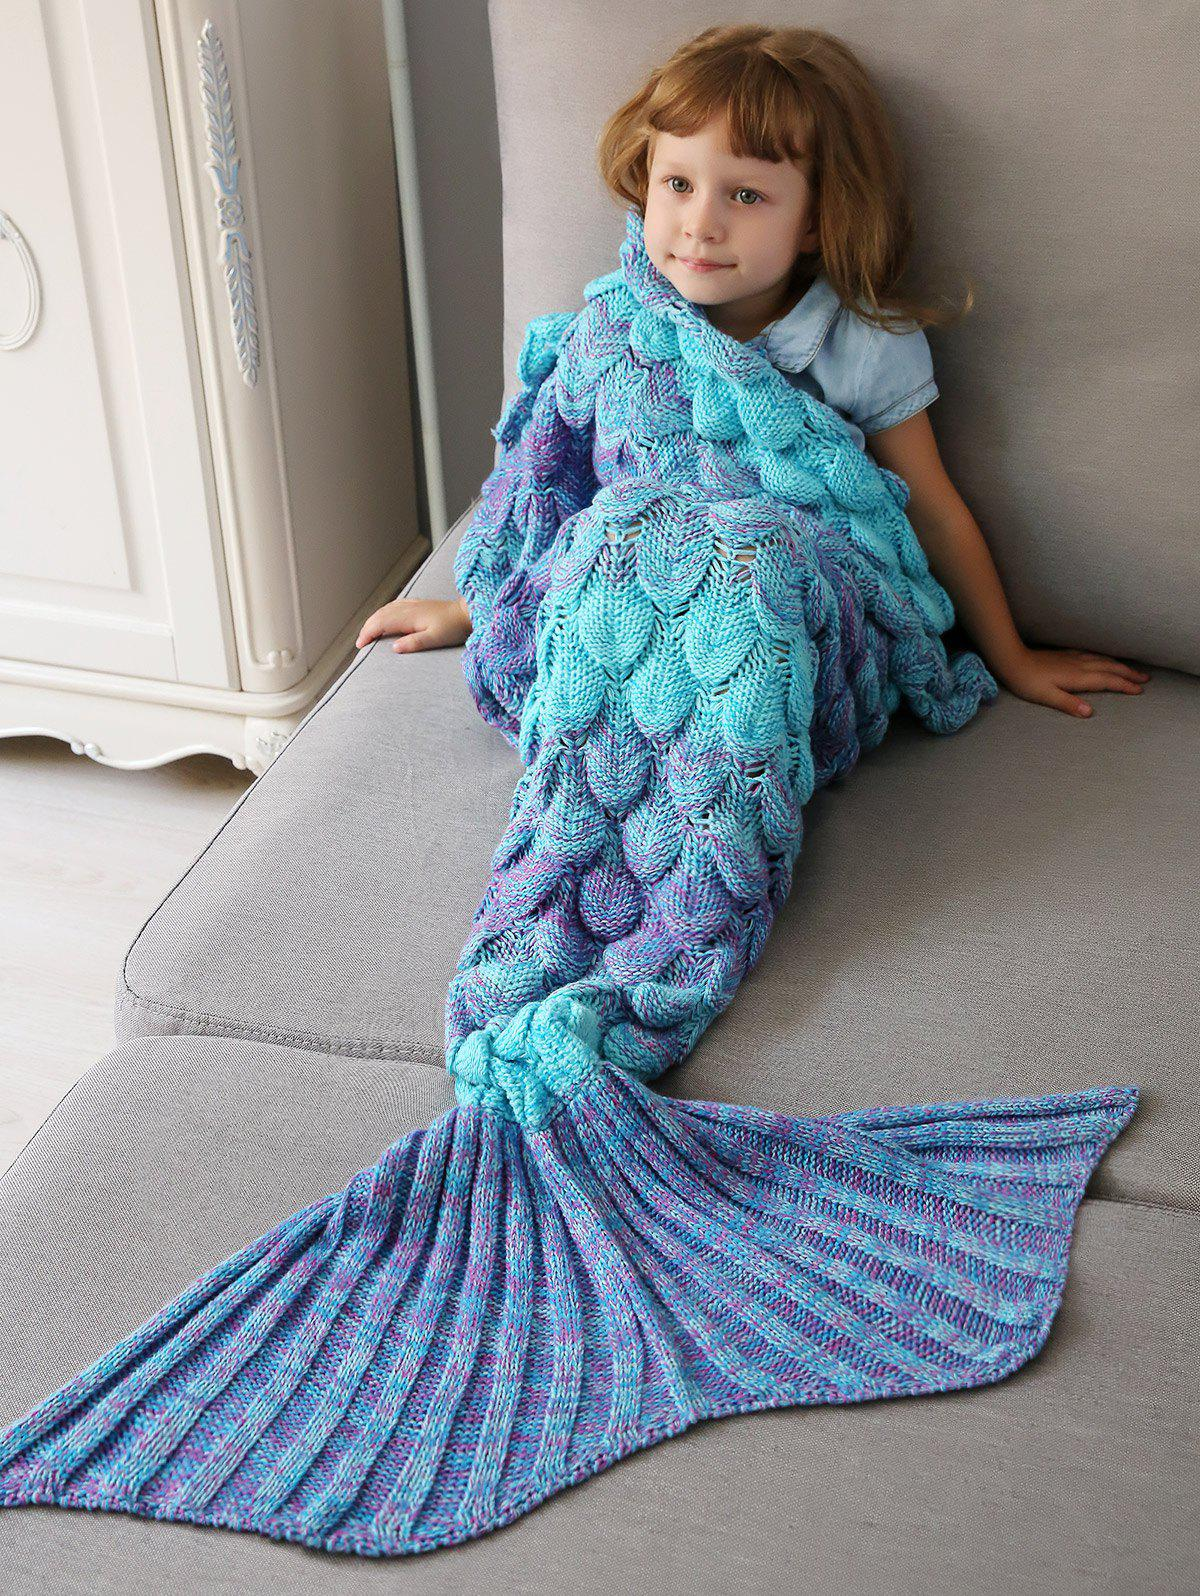 Home Decor Crochet Fish Scale Knit Mermaid Blanket Throw For KidsHOME<br><br>Color: COLORMIX; Type: Knitted; Material: Acrylic; Pattern Type: Others; Size(L*W)(CM): 140*90CM; Weight: 0.720kg; Package Contents: 1 x Blanket Throw;